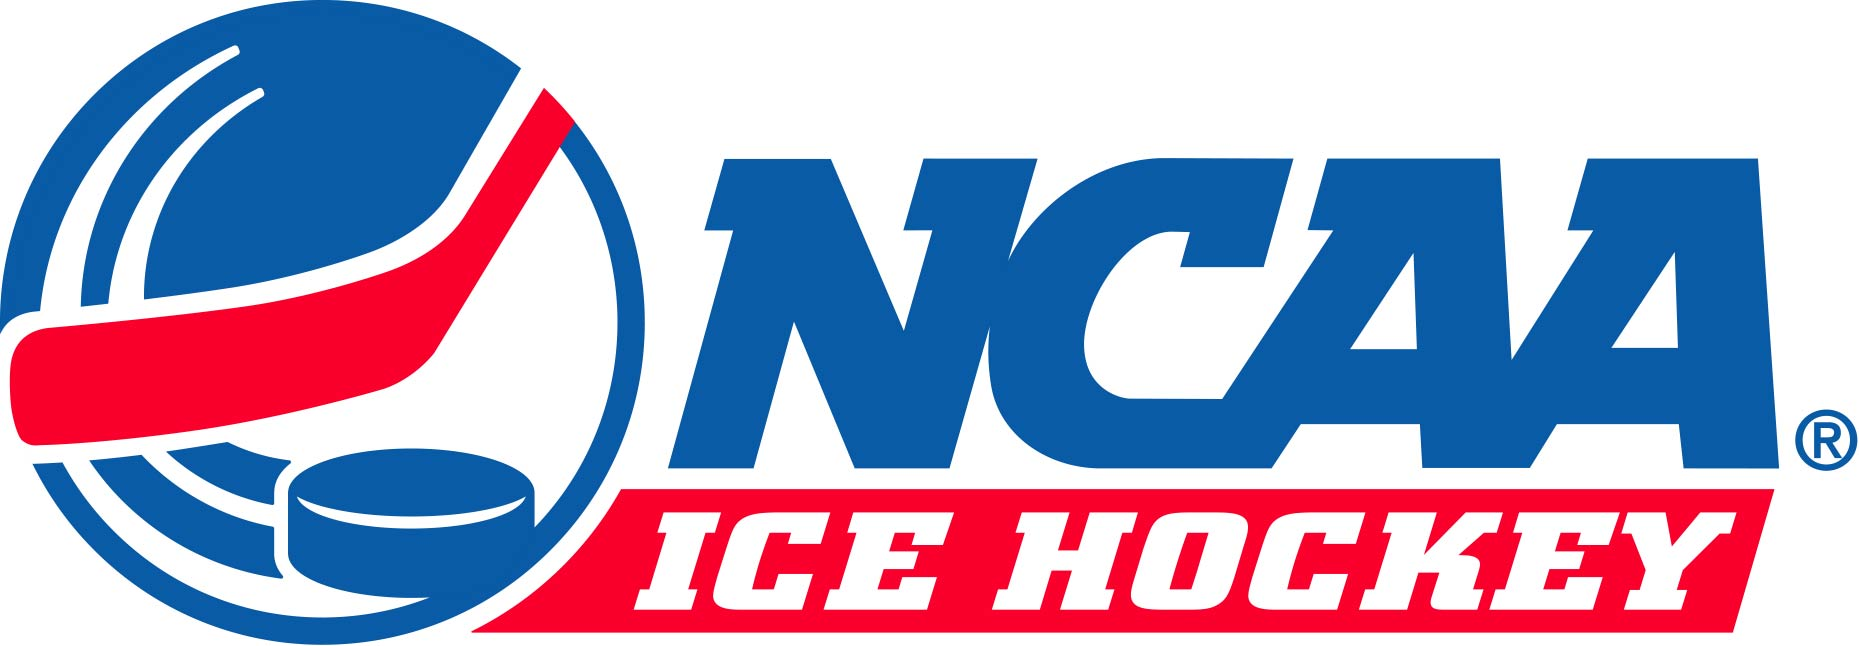 ncaahockey Catching the Torch: Kristos Ascent